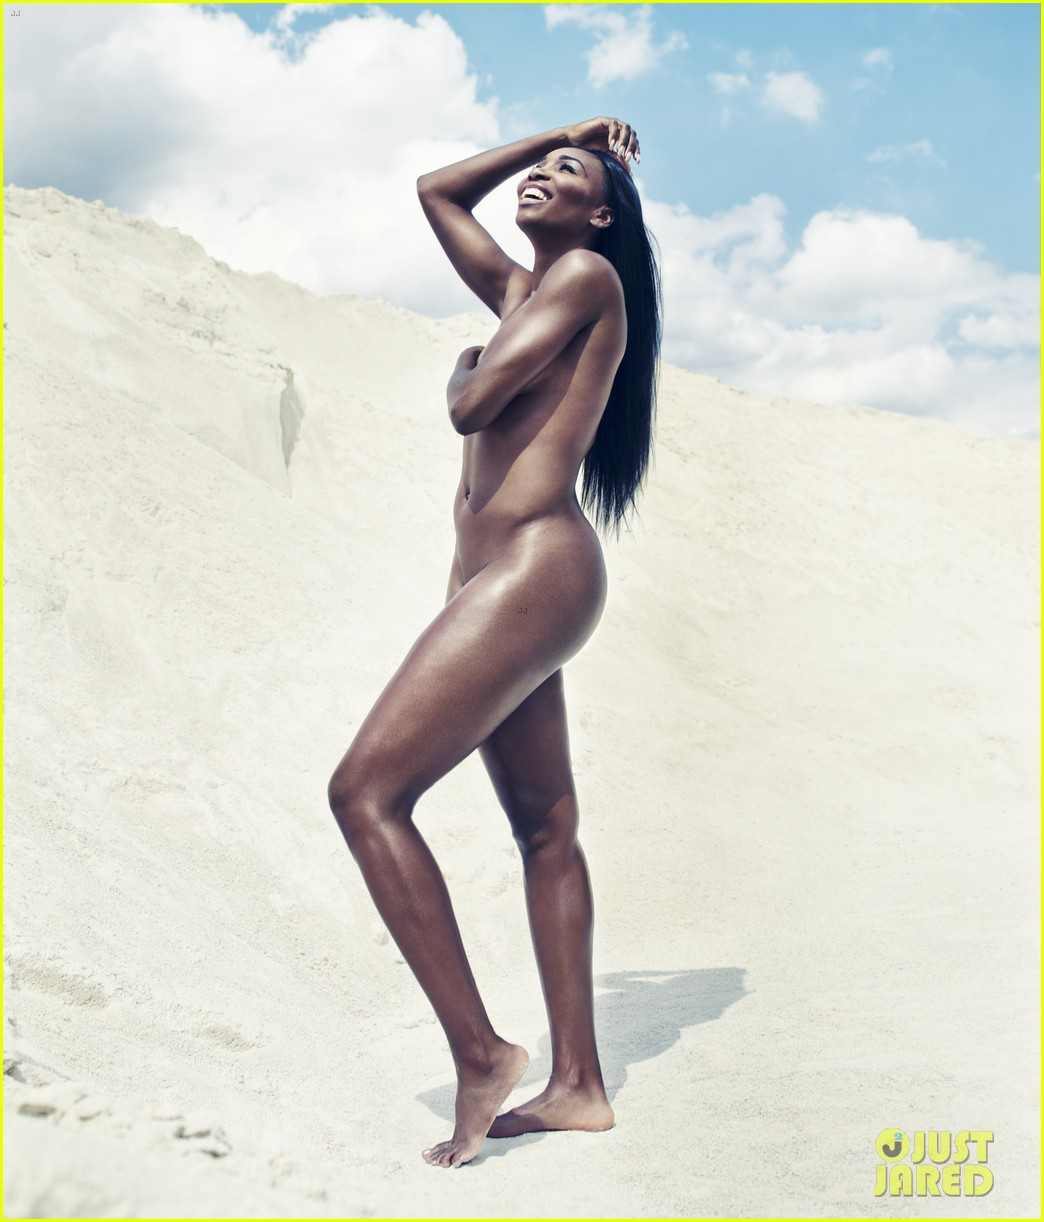 venus williams tomas berdych go naked for espn body issue 023141770